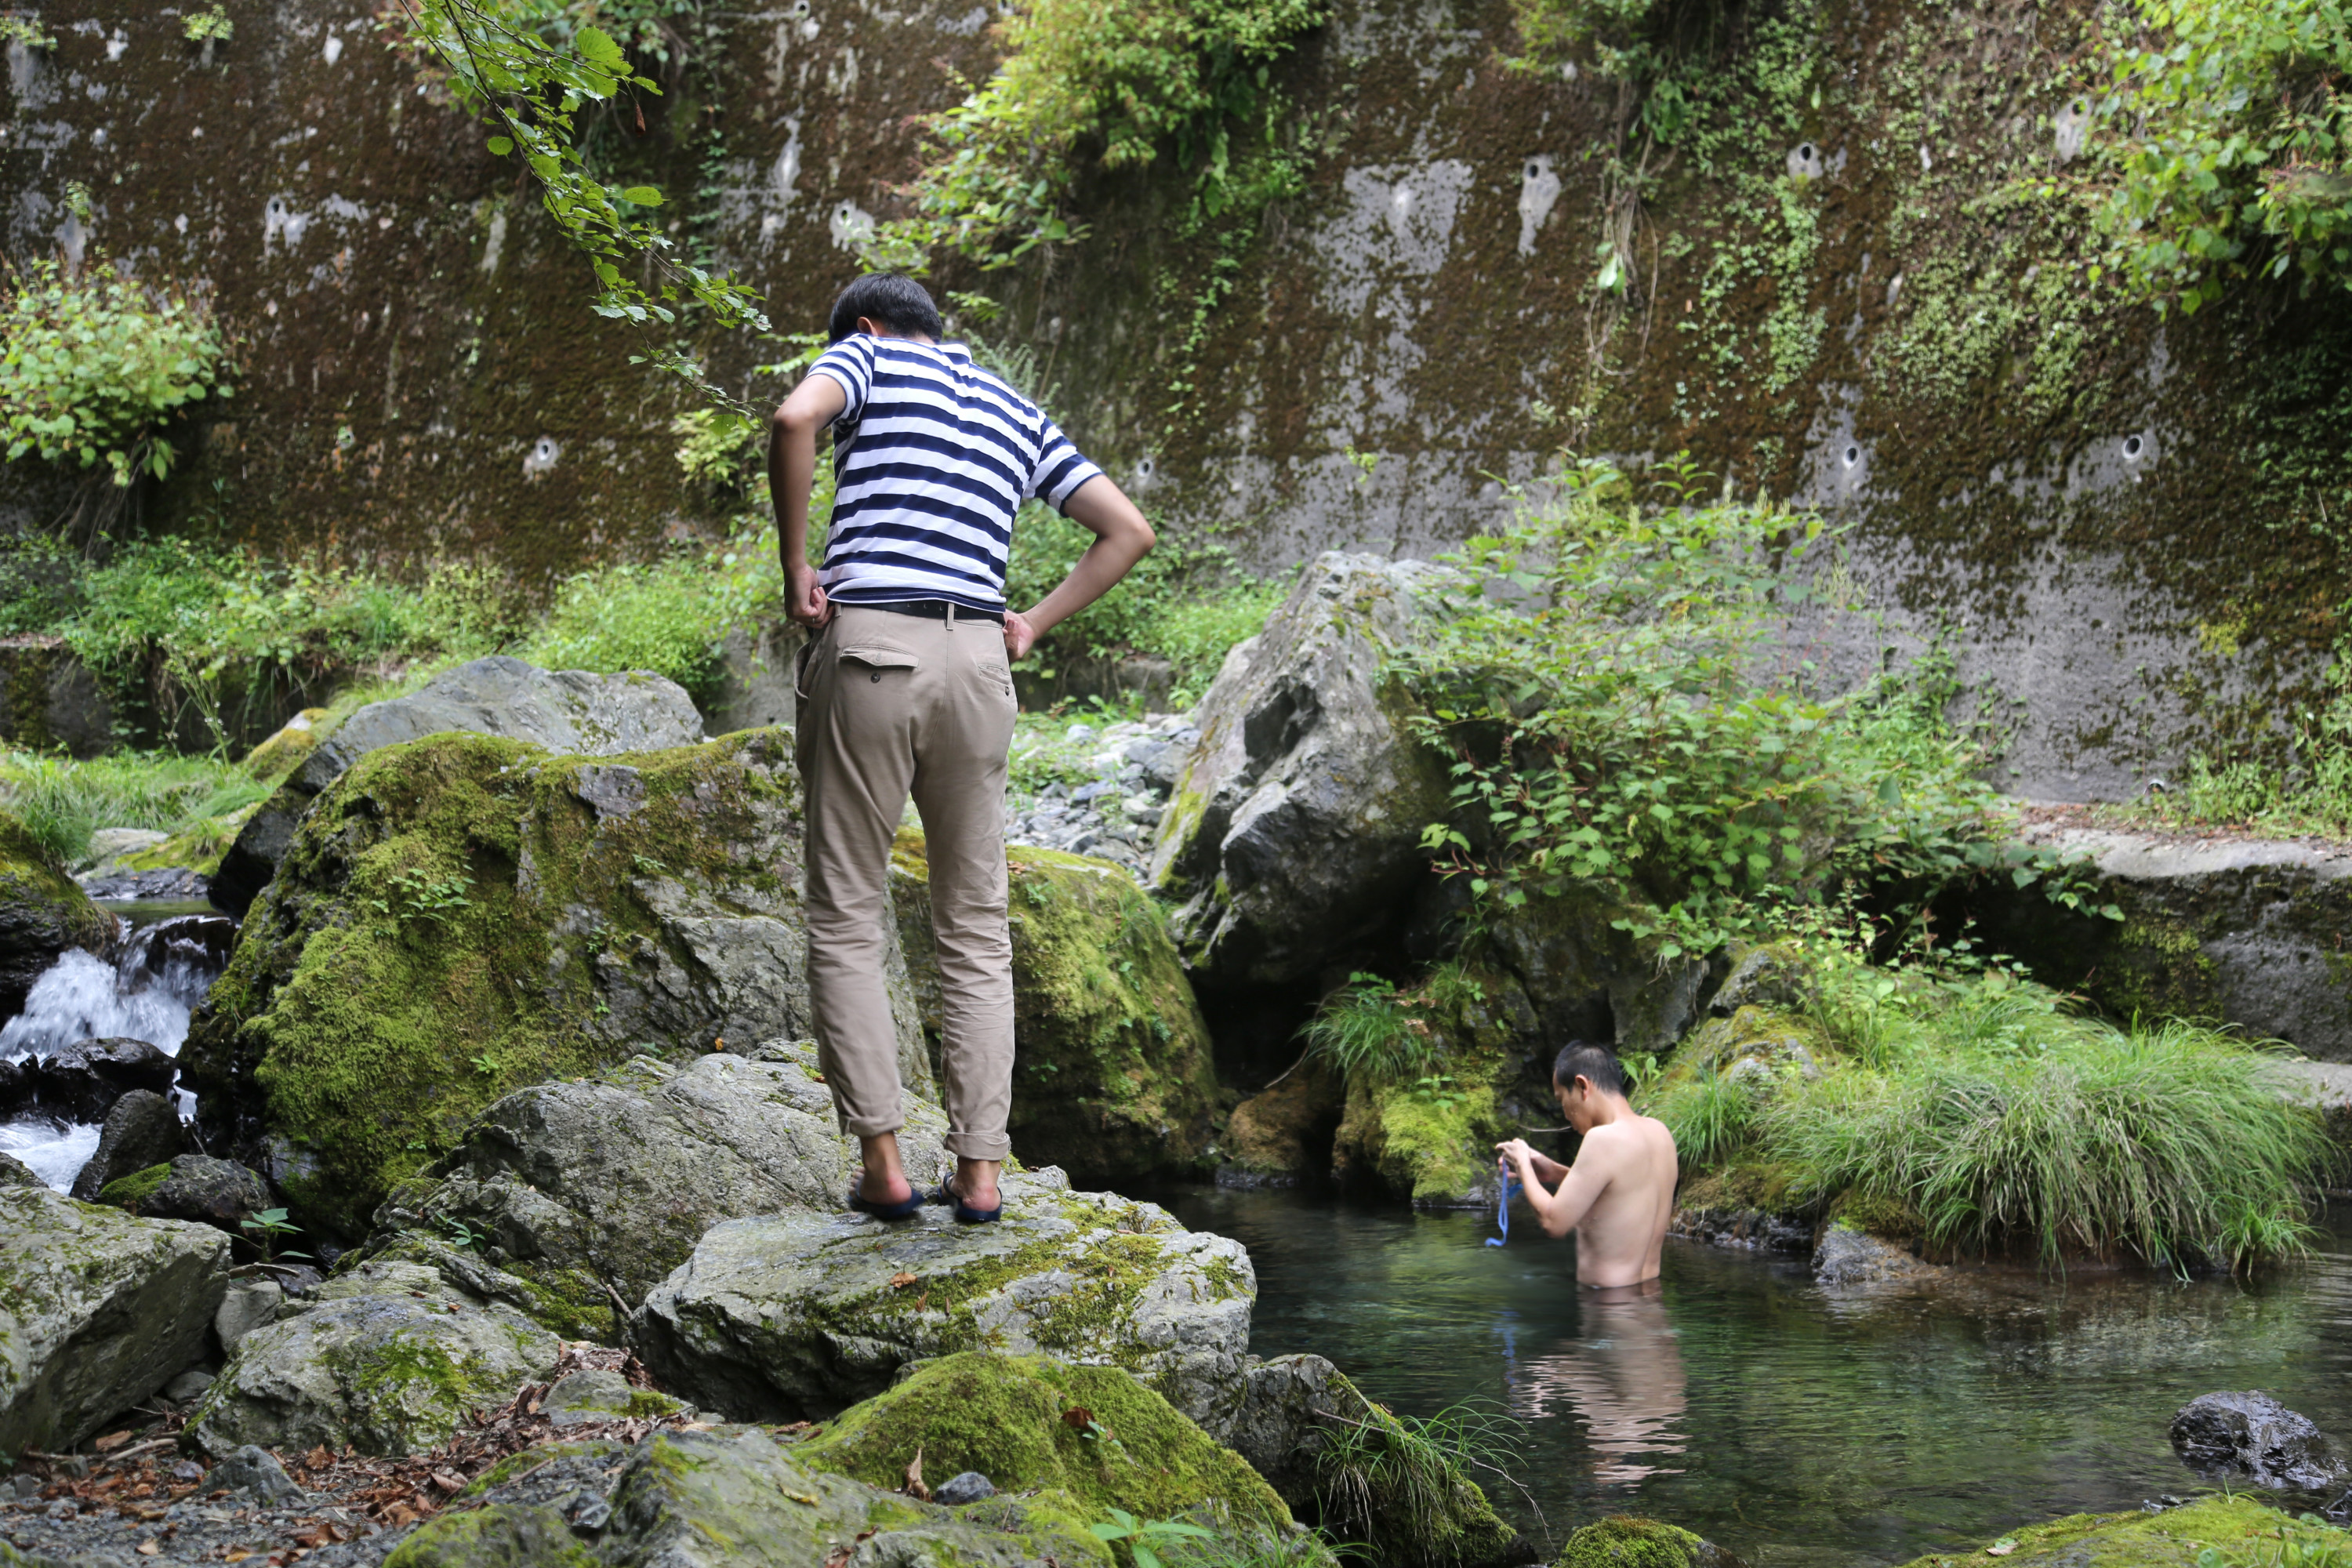 swim-in-river-of-chichibu-002